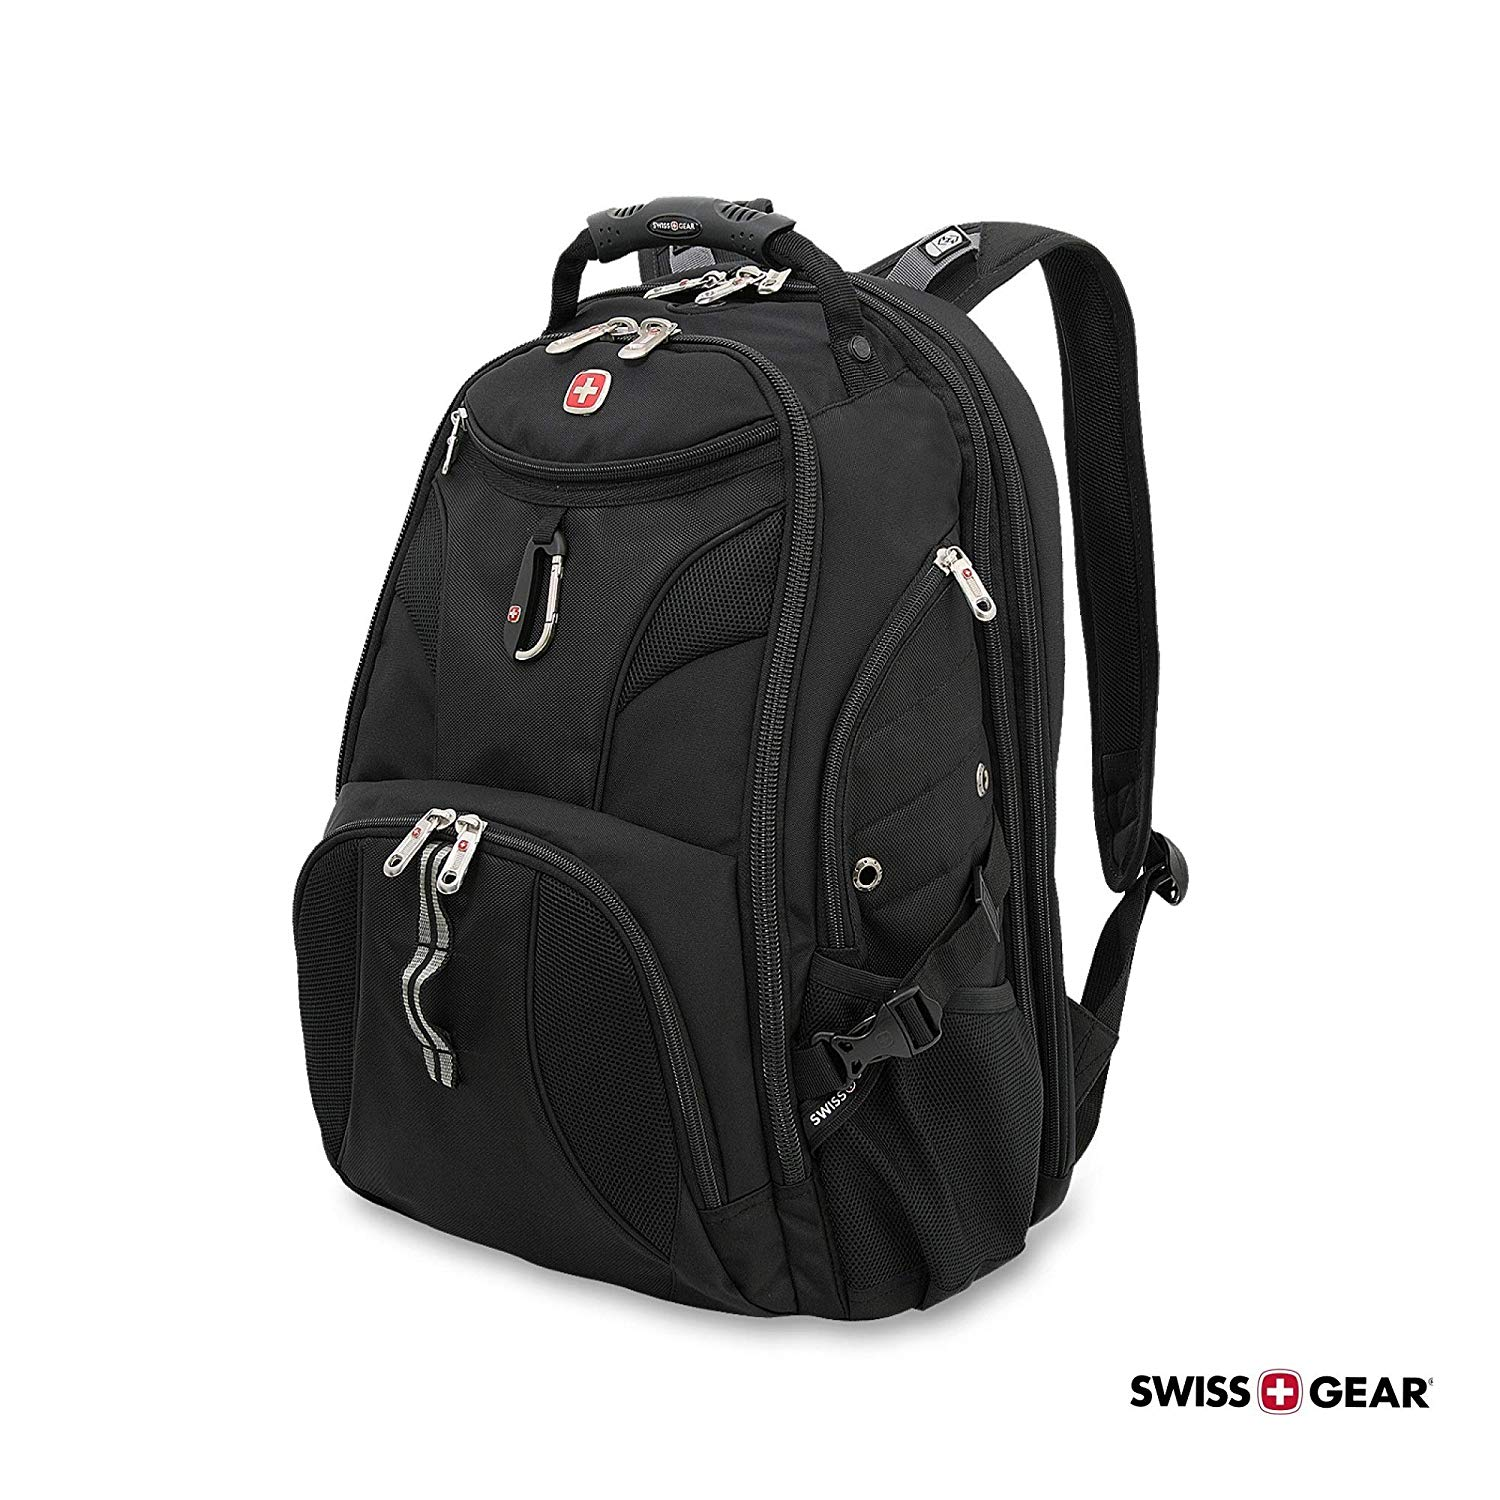 swissgear travel gear scansmart backpack 1900 review trekbible On swissgear travel gear 5977